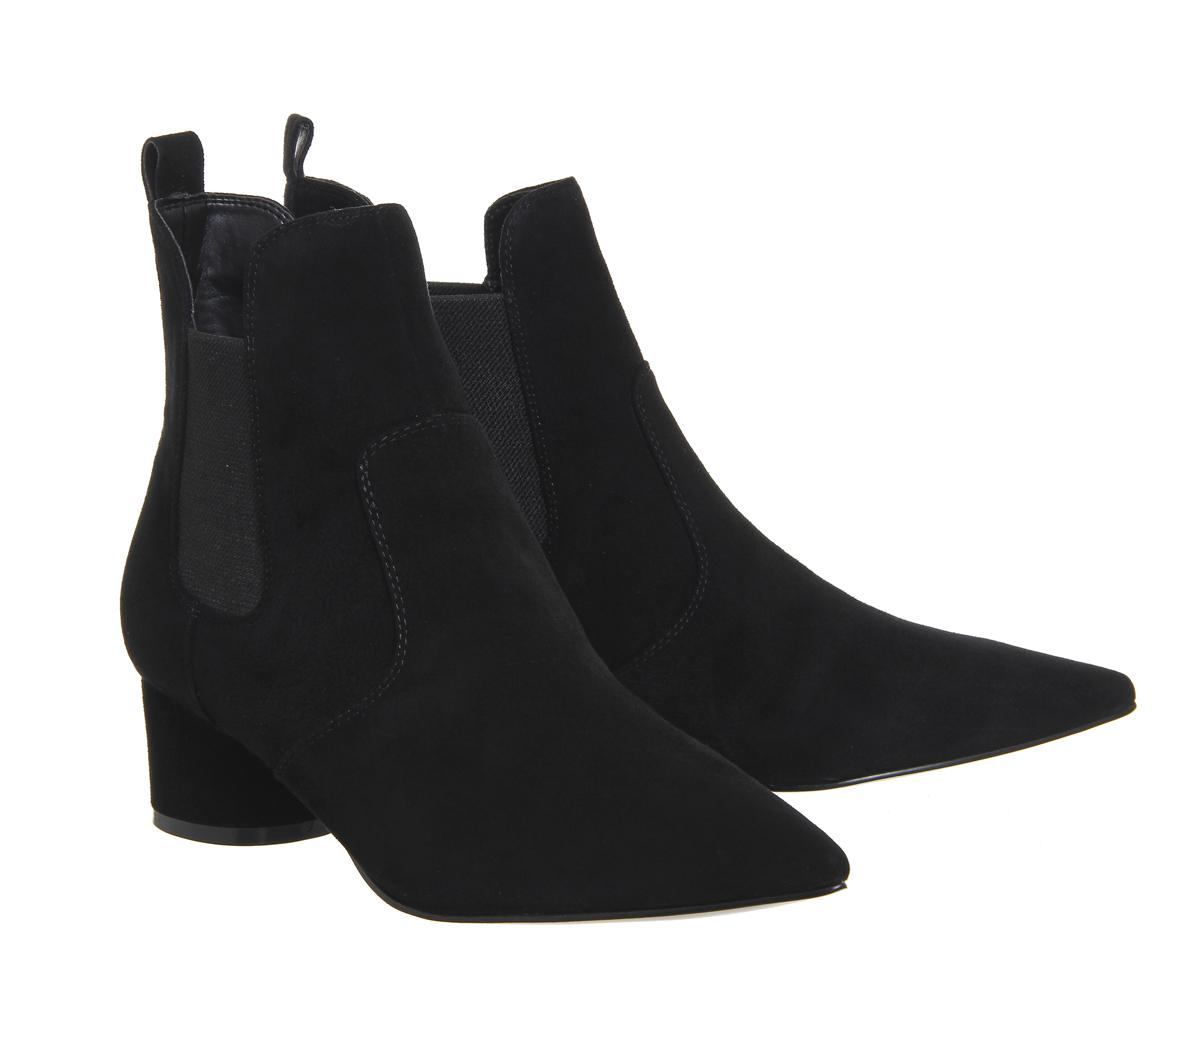 Kendall + Kylie Suede Logan Chelsea Boots in Black